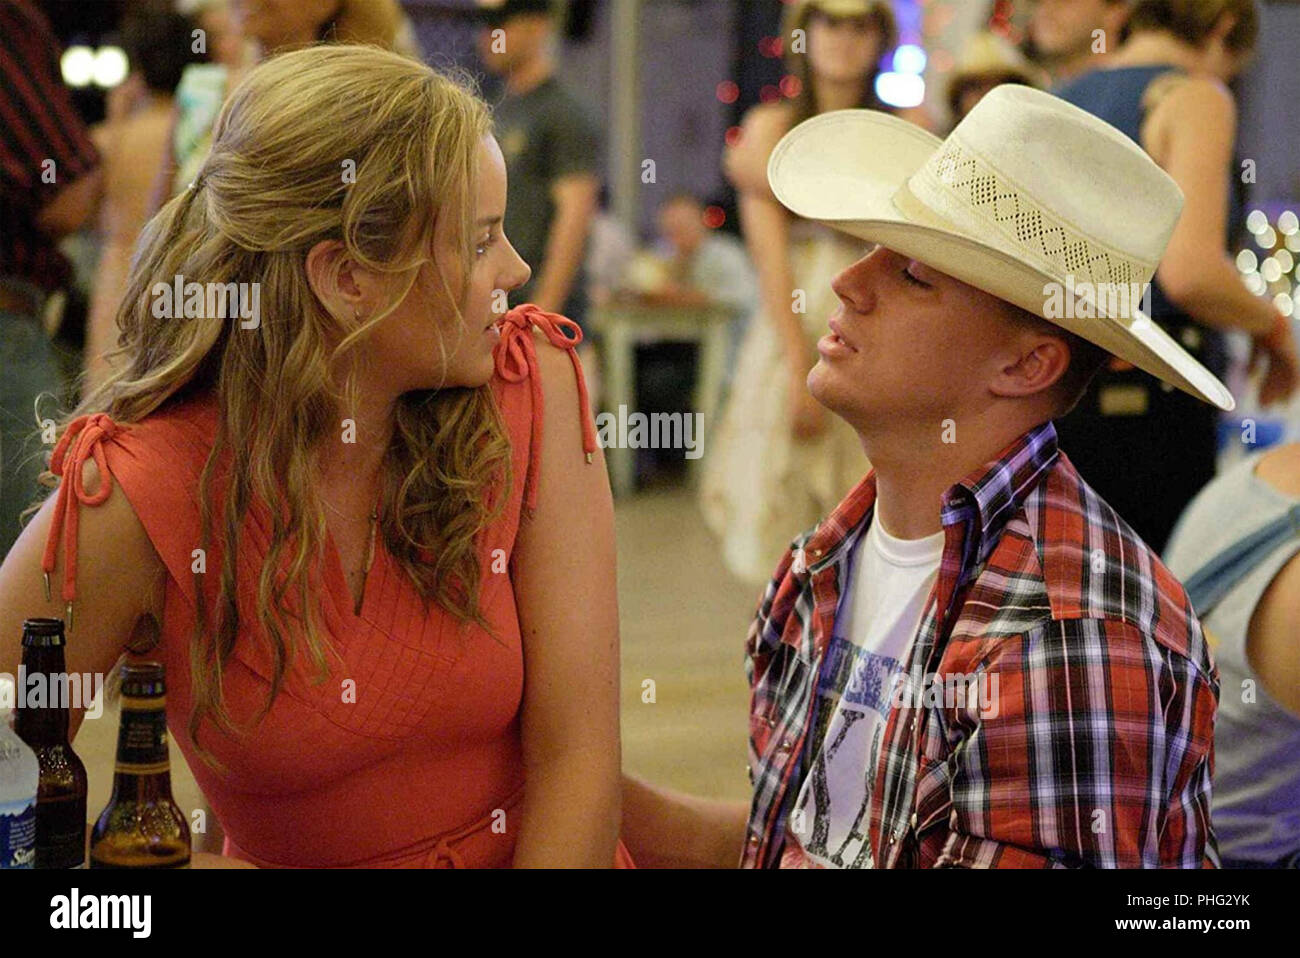 STOP-LOSS 2008 Paramount Pictures film with Abbie Cornish and Channing Tatum - Stock Image